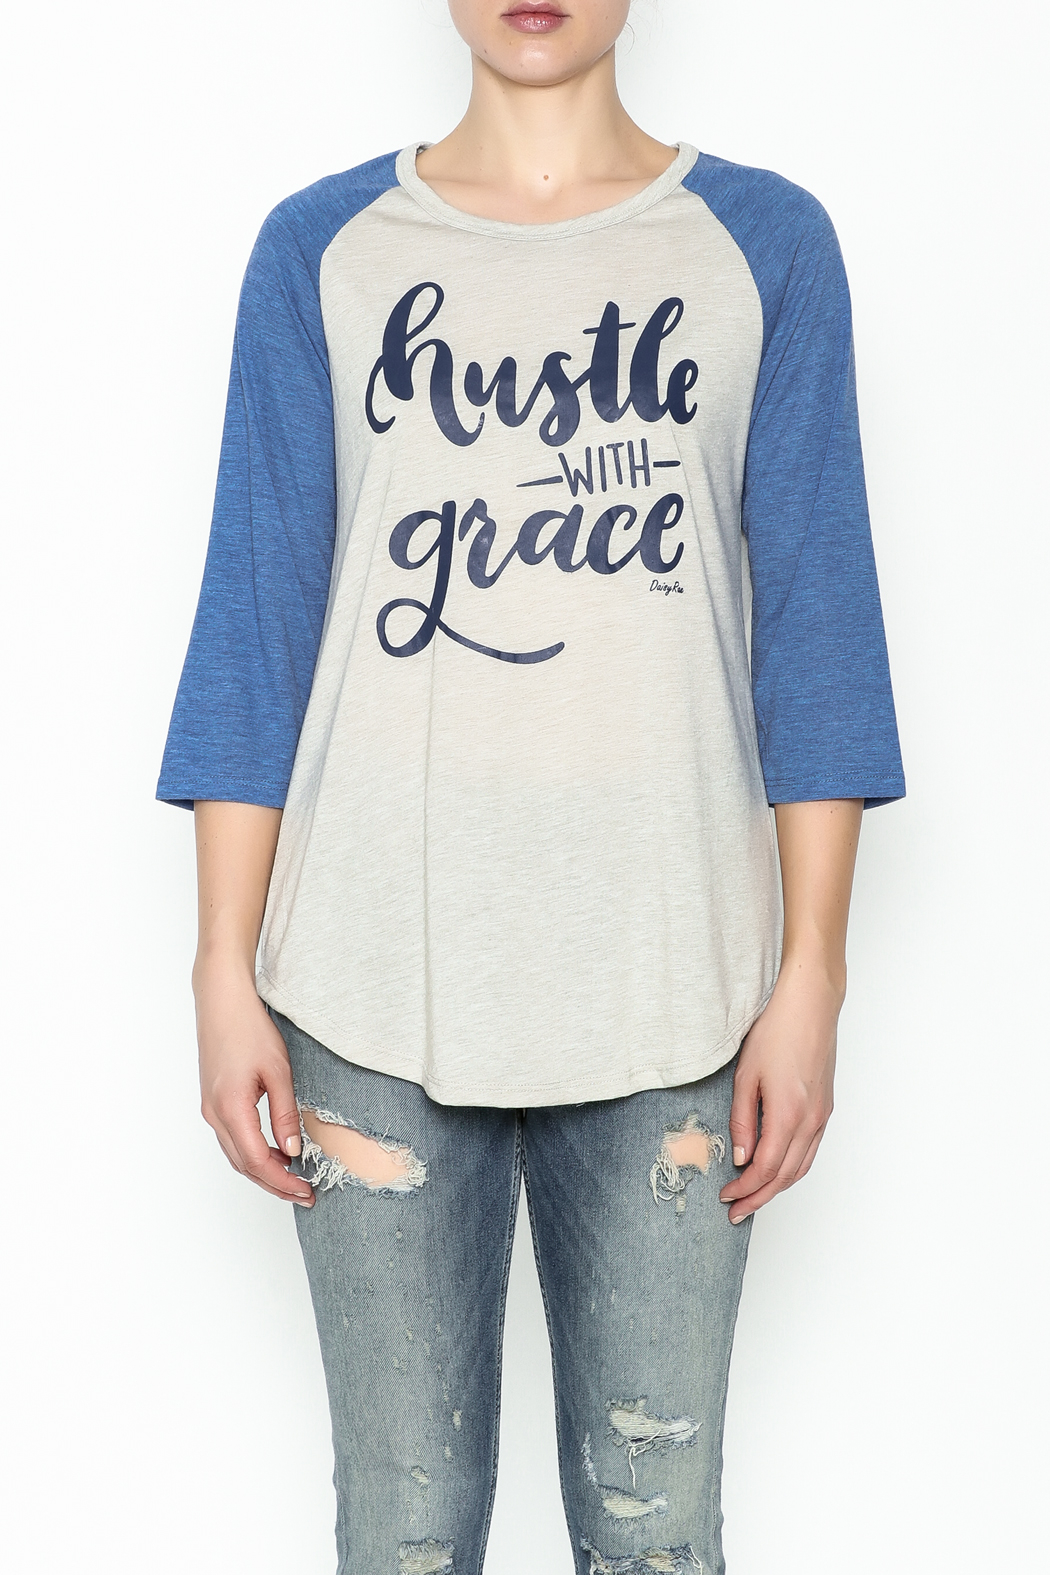 Daisey Ray Hustle Long Sleeve Top - Front Full Image